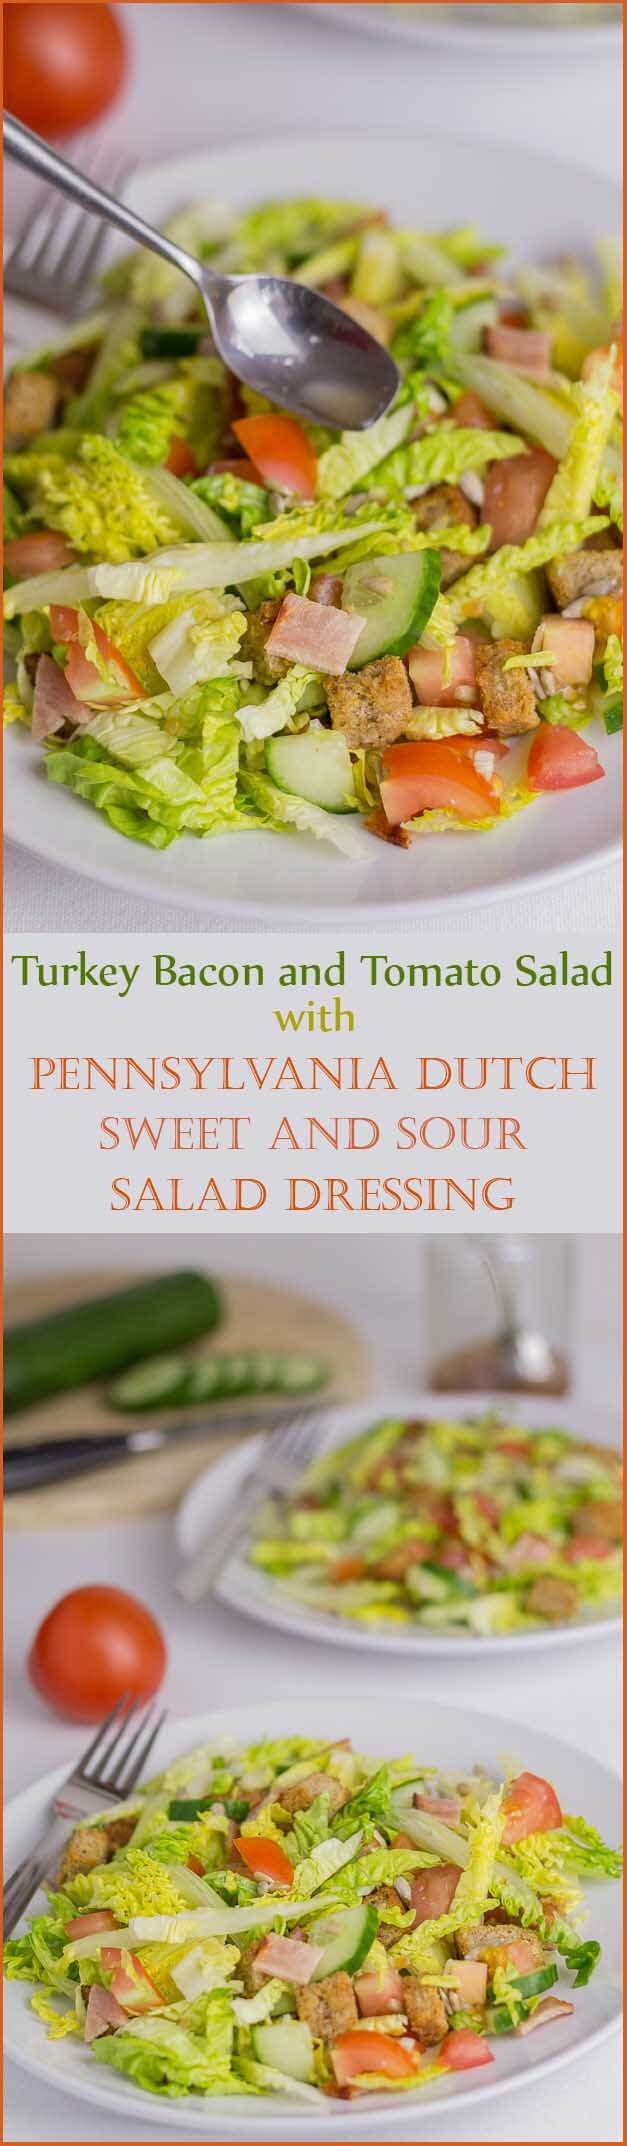 This turkey bacon and tomato salad is a delicious and easy, tasty, lunch or dinner salad option with a unique Pennsylvania Dutch sweet and sour salad dressing.